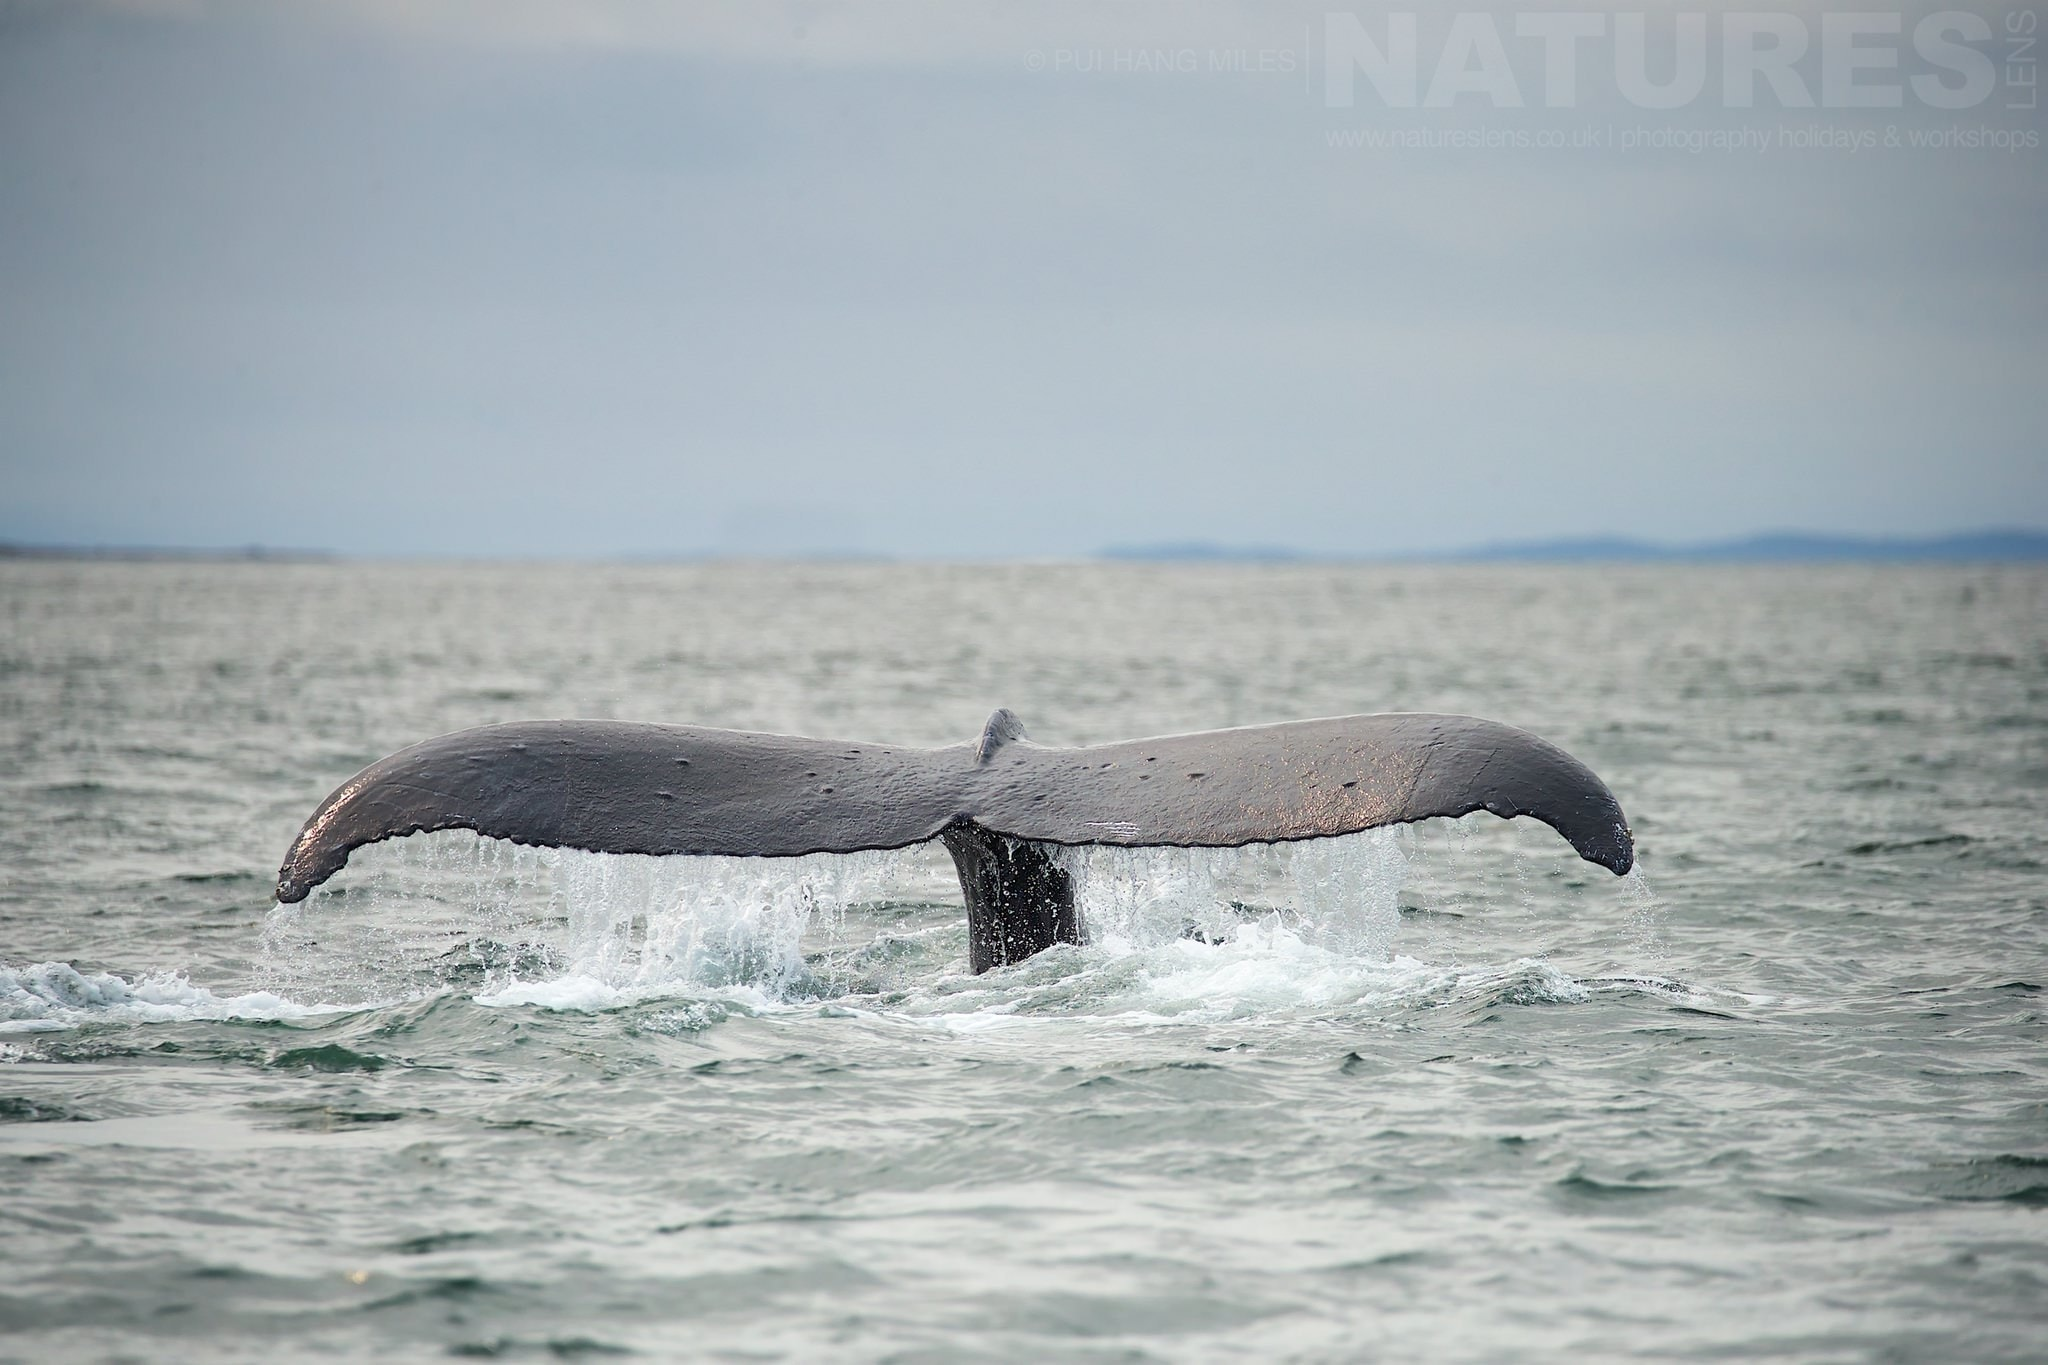 Humpback Whale Fluke  Photographed During The NaturesLens Alaskan Whales And Glaciers Photography Holiday